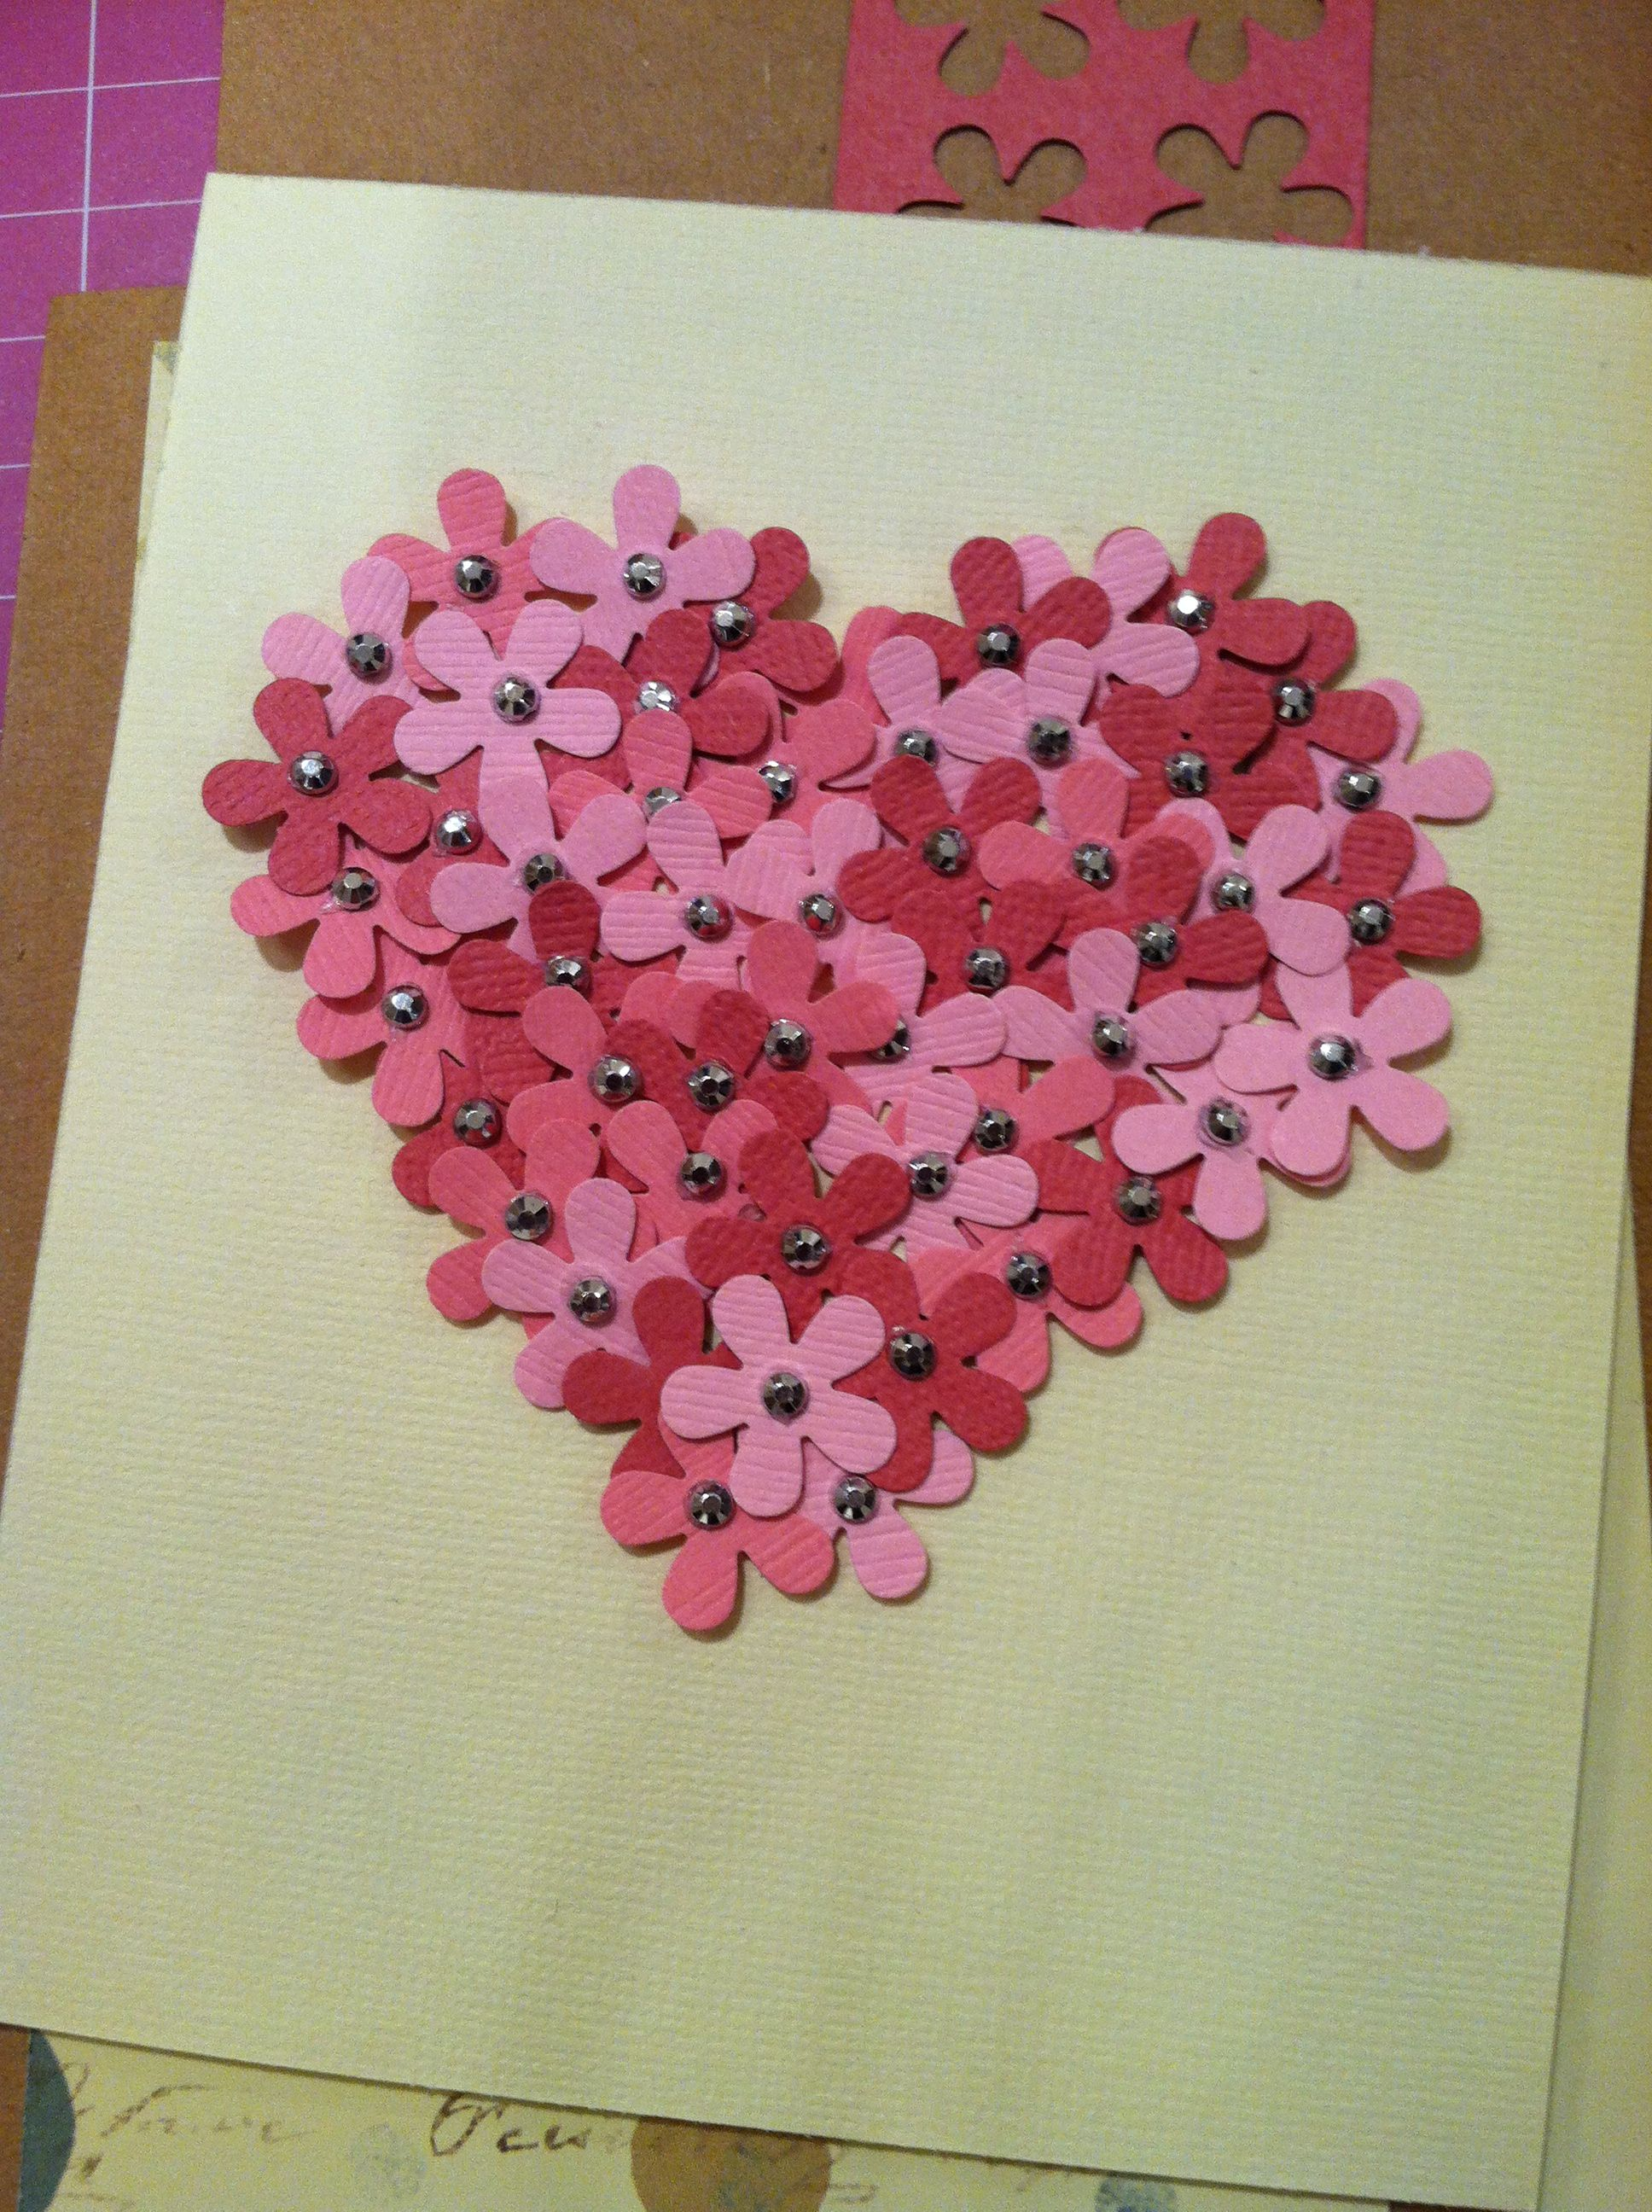 Flower Heart Homemade Card Idea Cred To My Cousin Sarah